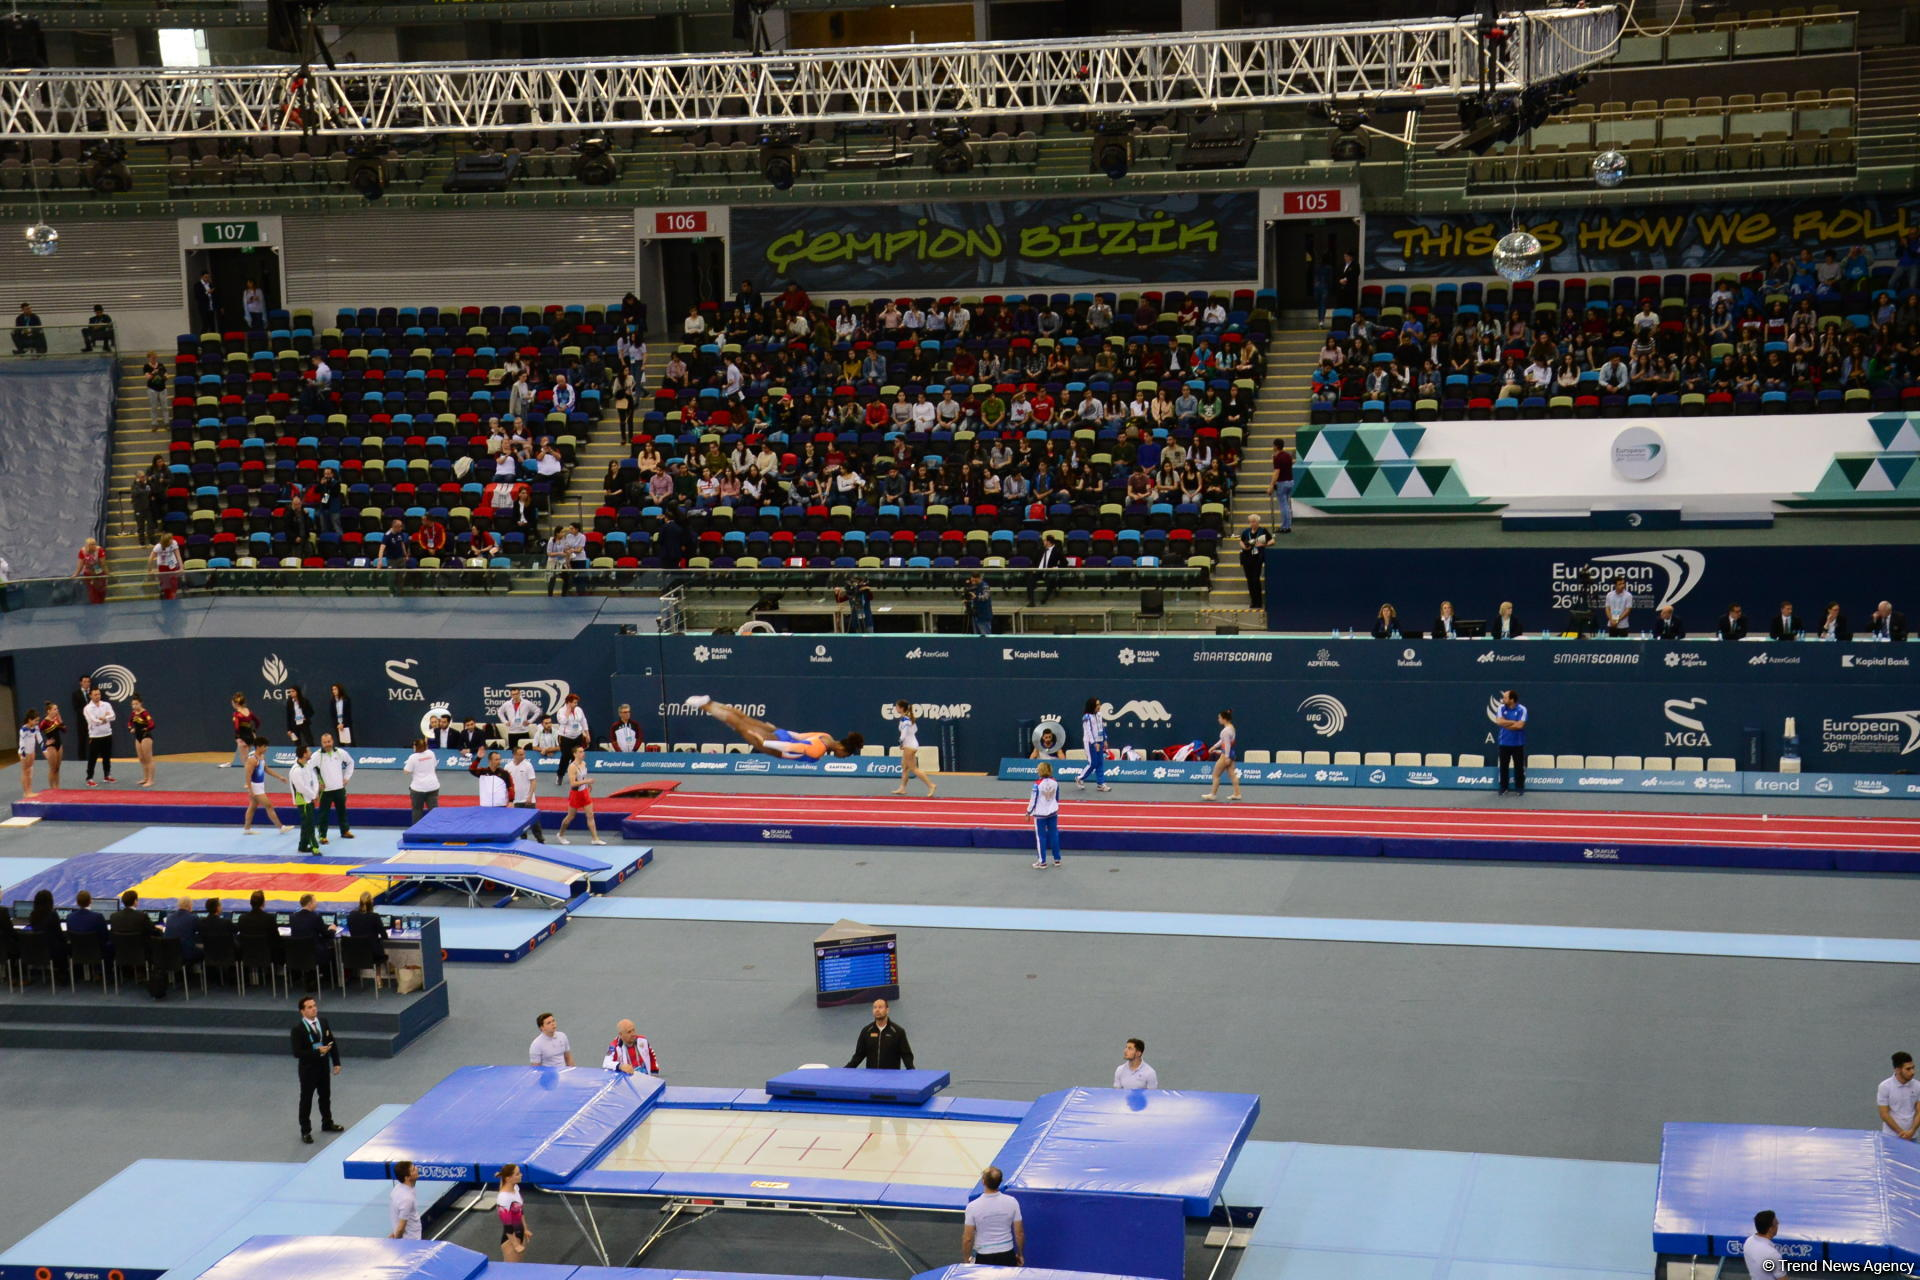 Azerbaijan's gymnast hopes to feel fan support at European Championships in Baku